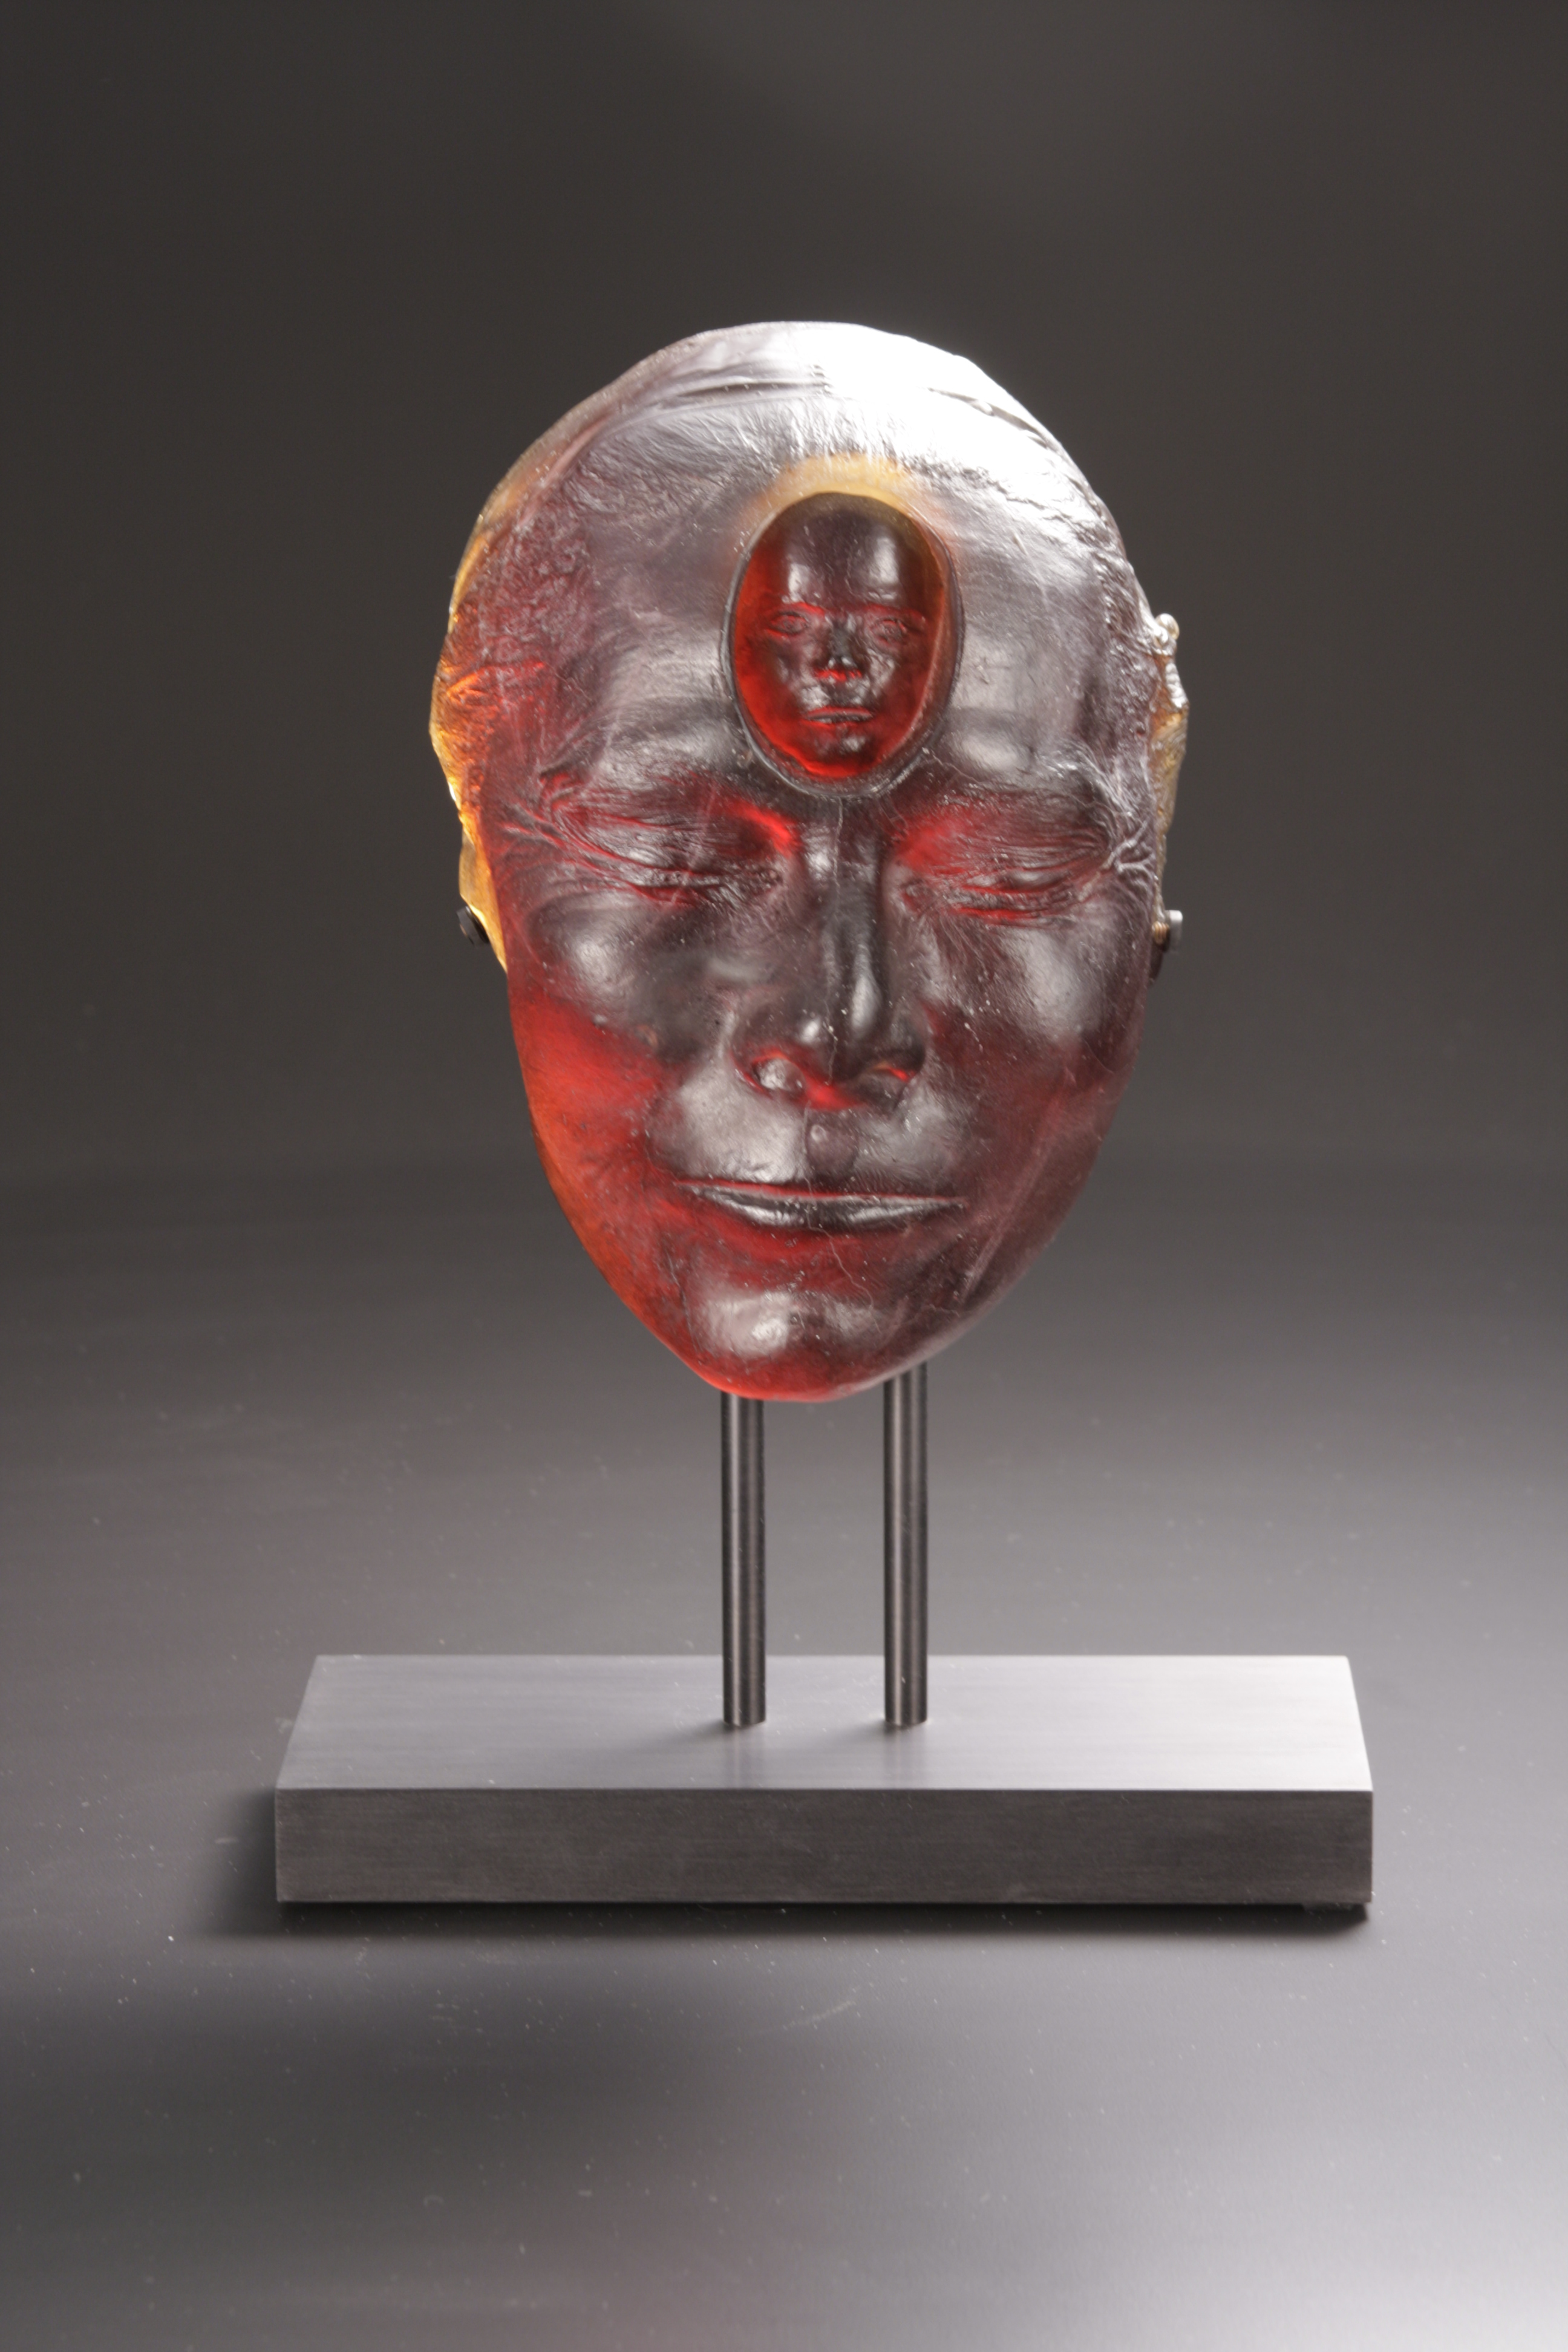 Sculpture of women's head with small child's face in forehead on black metal stand.